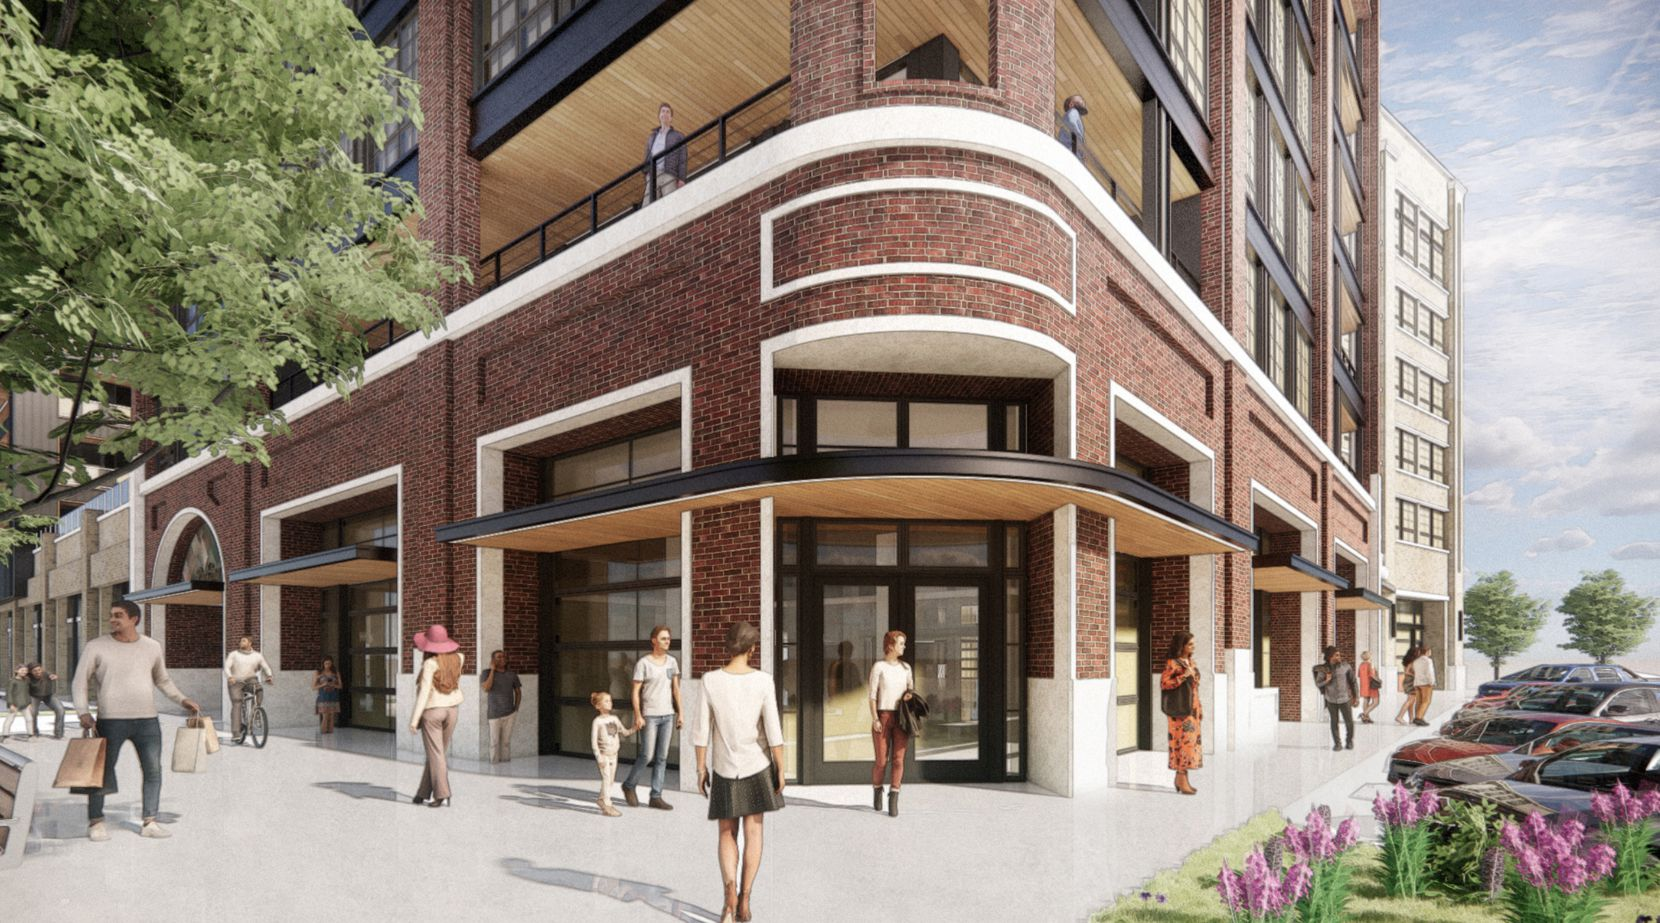 The Willow apartments are planned at Commerce and Willow streets in Deep Ellum.